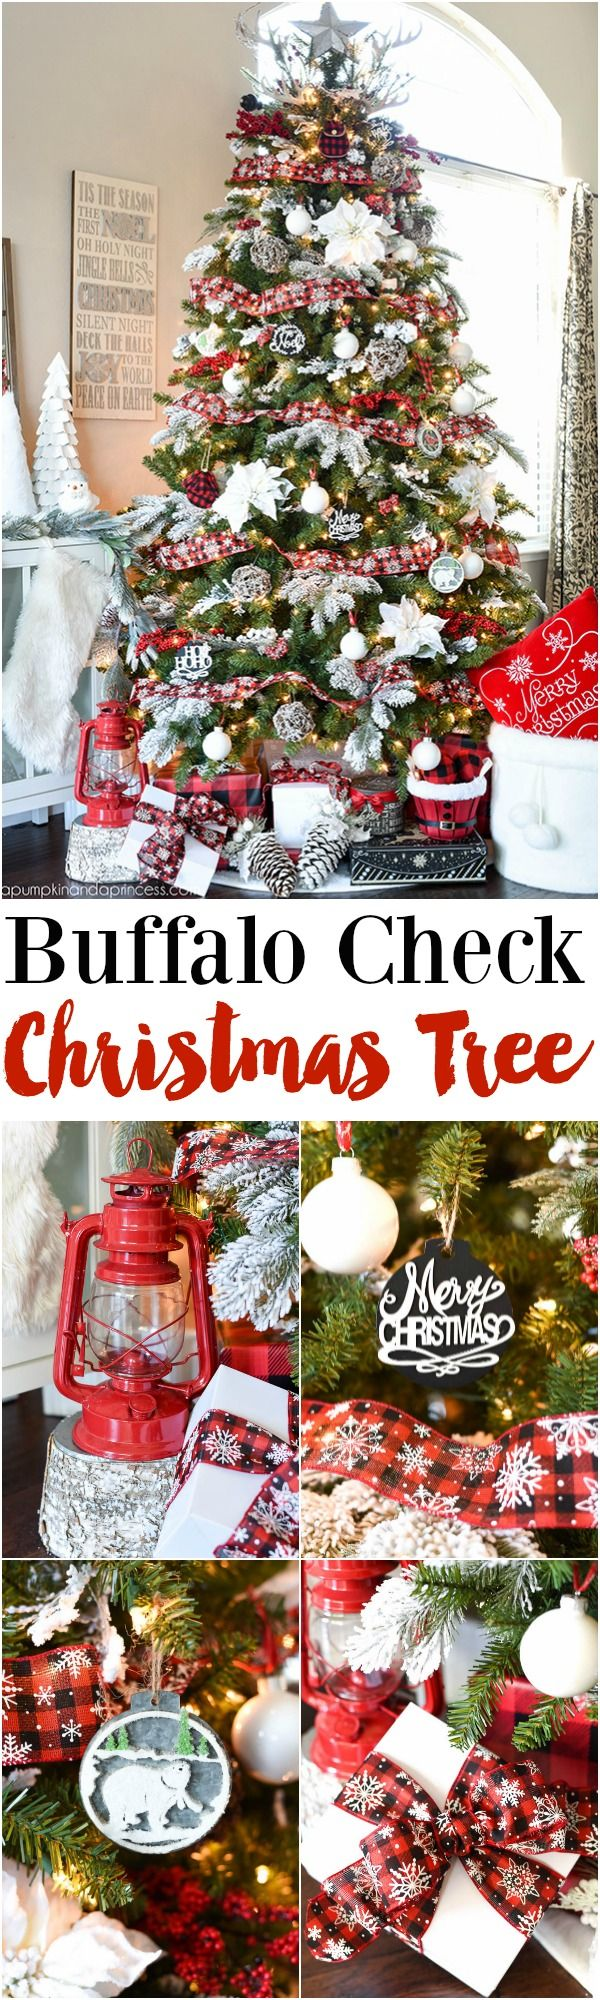 Buffalo Check Christmas Tree 608 best Christmas